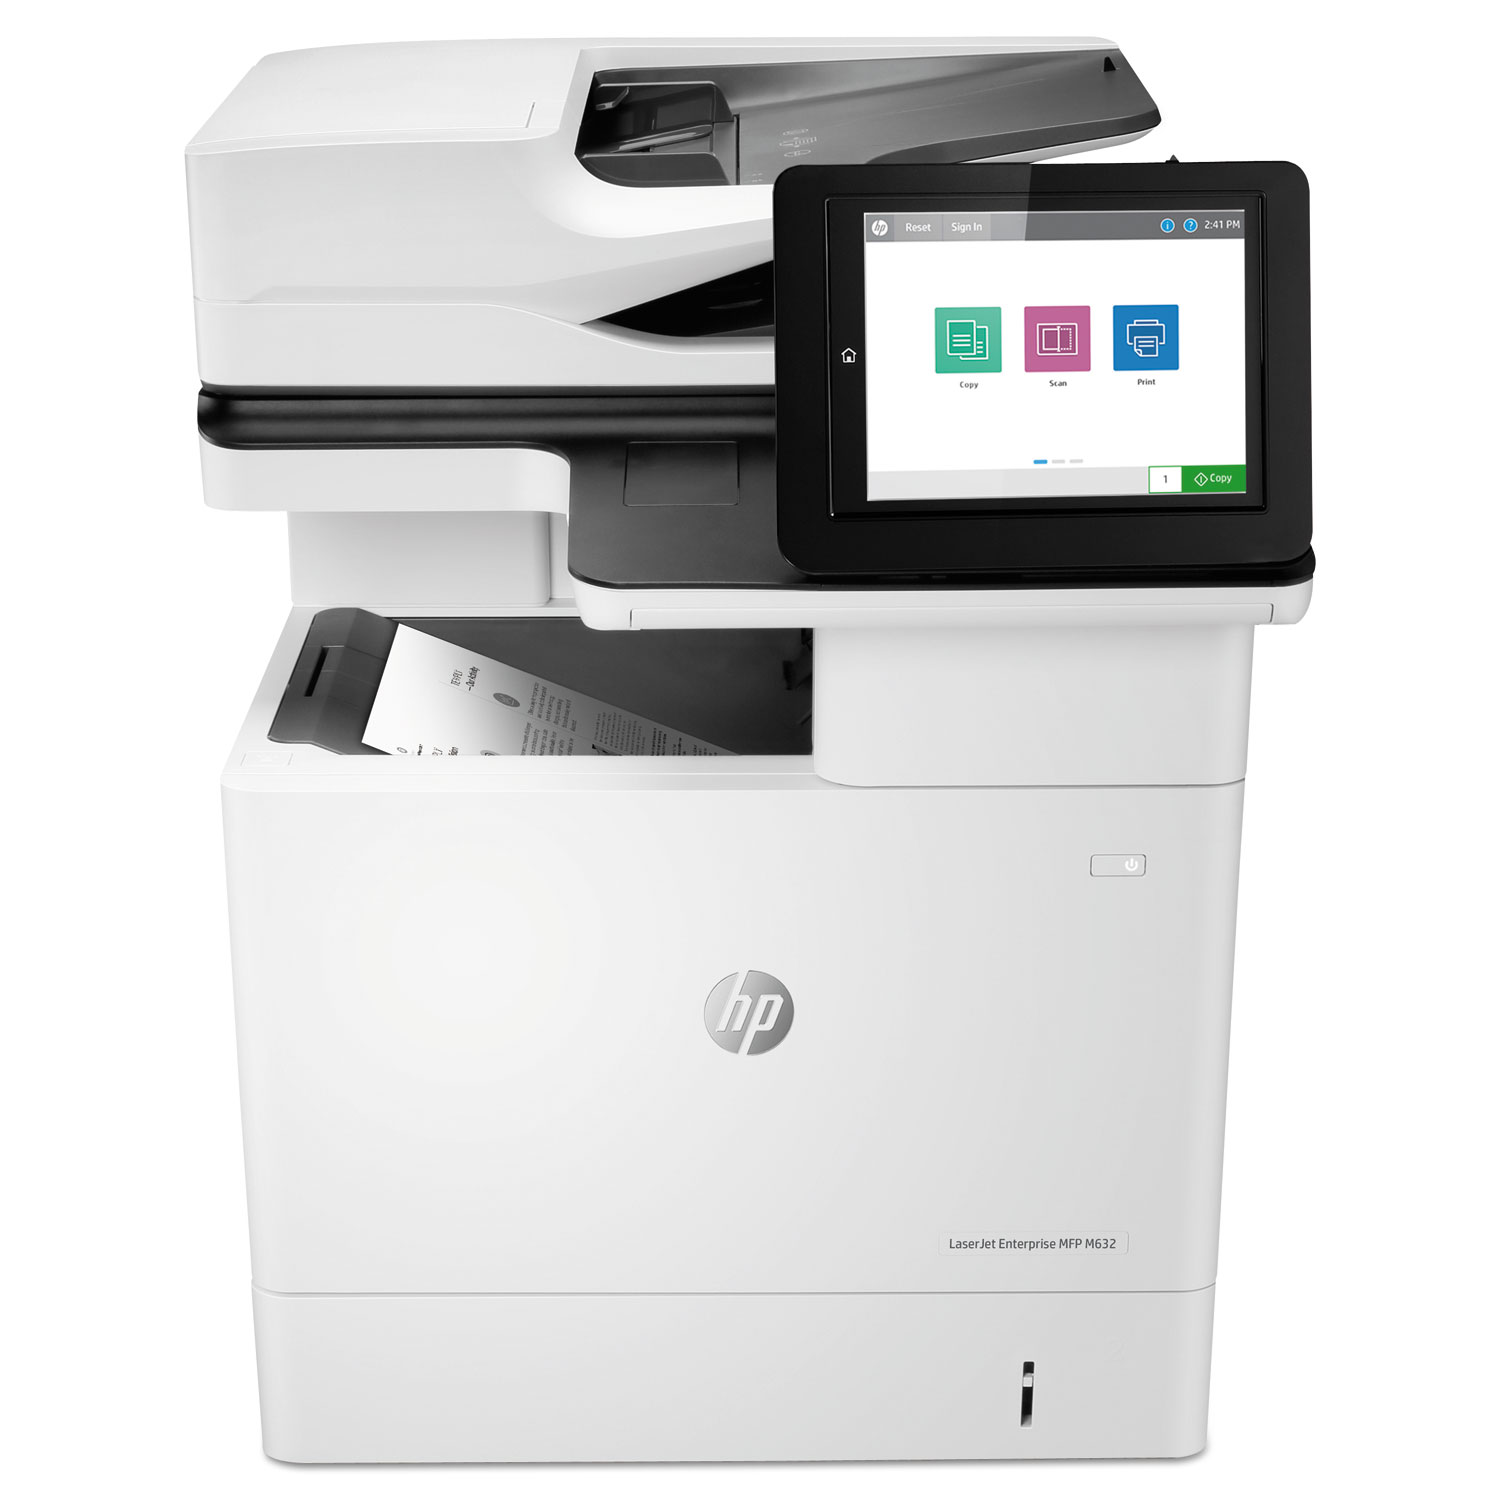 LaserJet Enterprise MFP M632h, Copy/Print/Scan